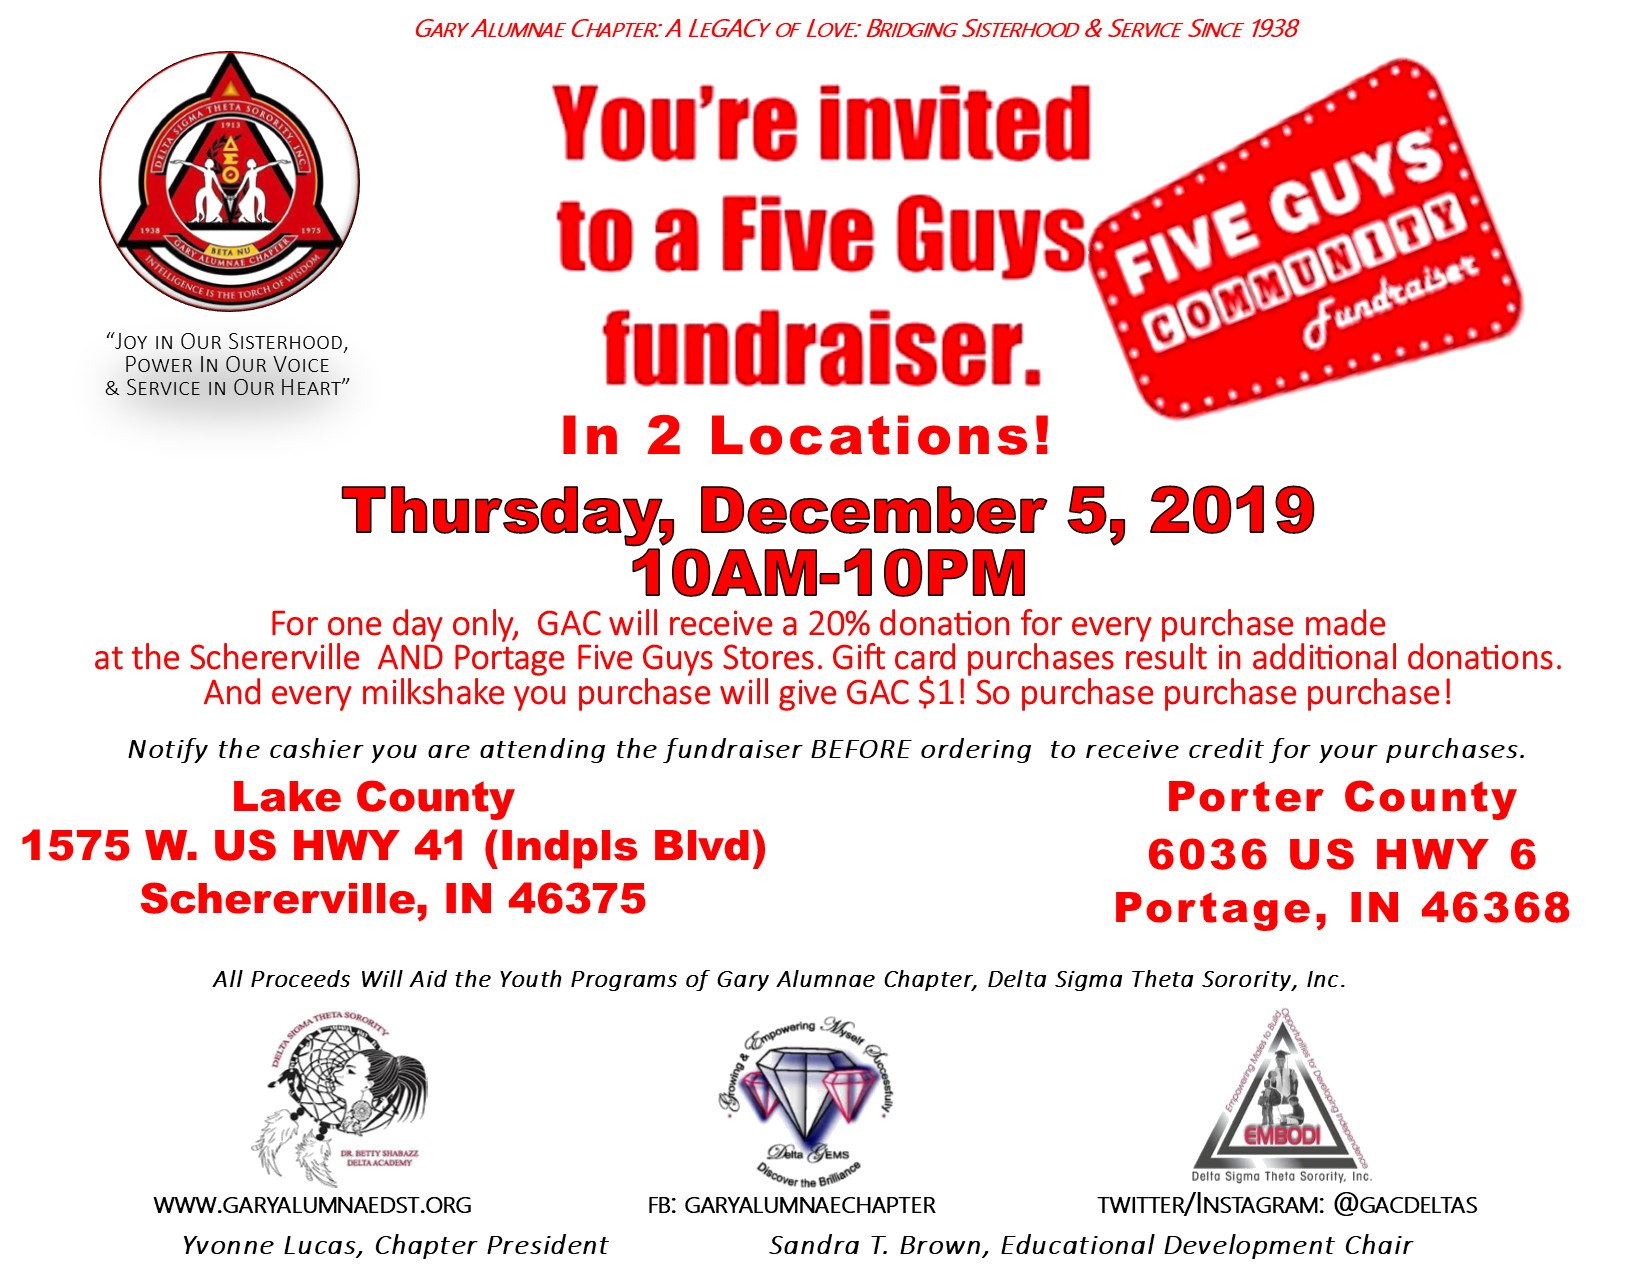 FIVE GUYS FUNDRAISING EVENT